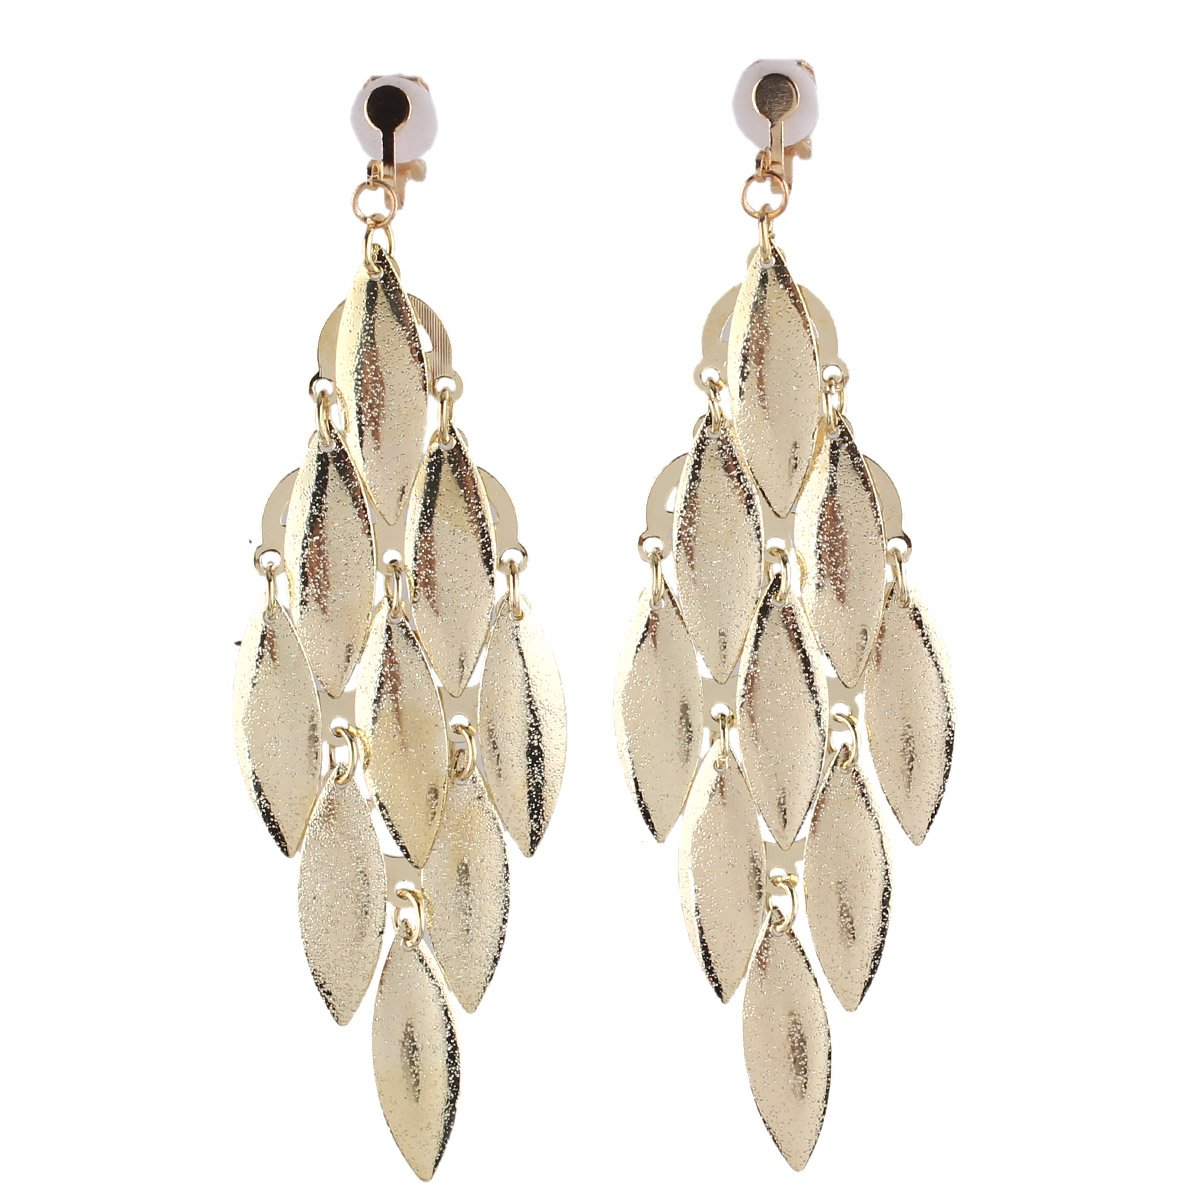 Grace Jun New Handmade Multi-layer Dangle Drop Earrings and Clip on Earrings No Pierced for Women (Gold Clip-on)